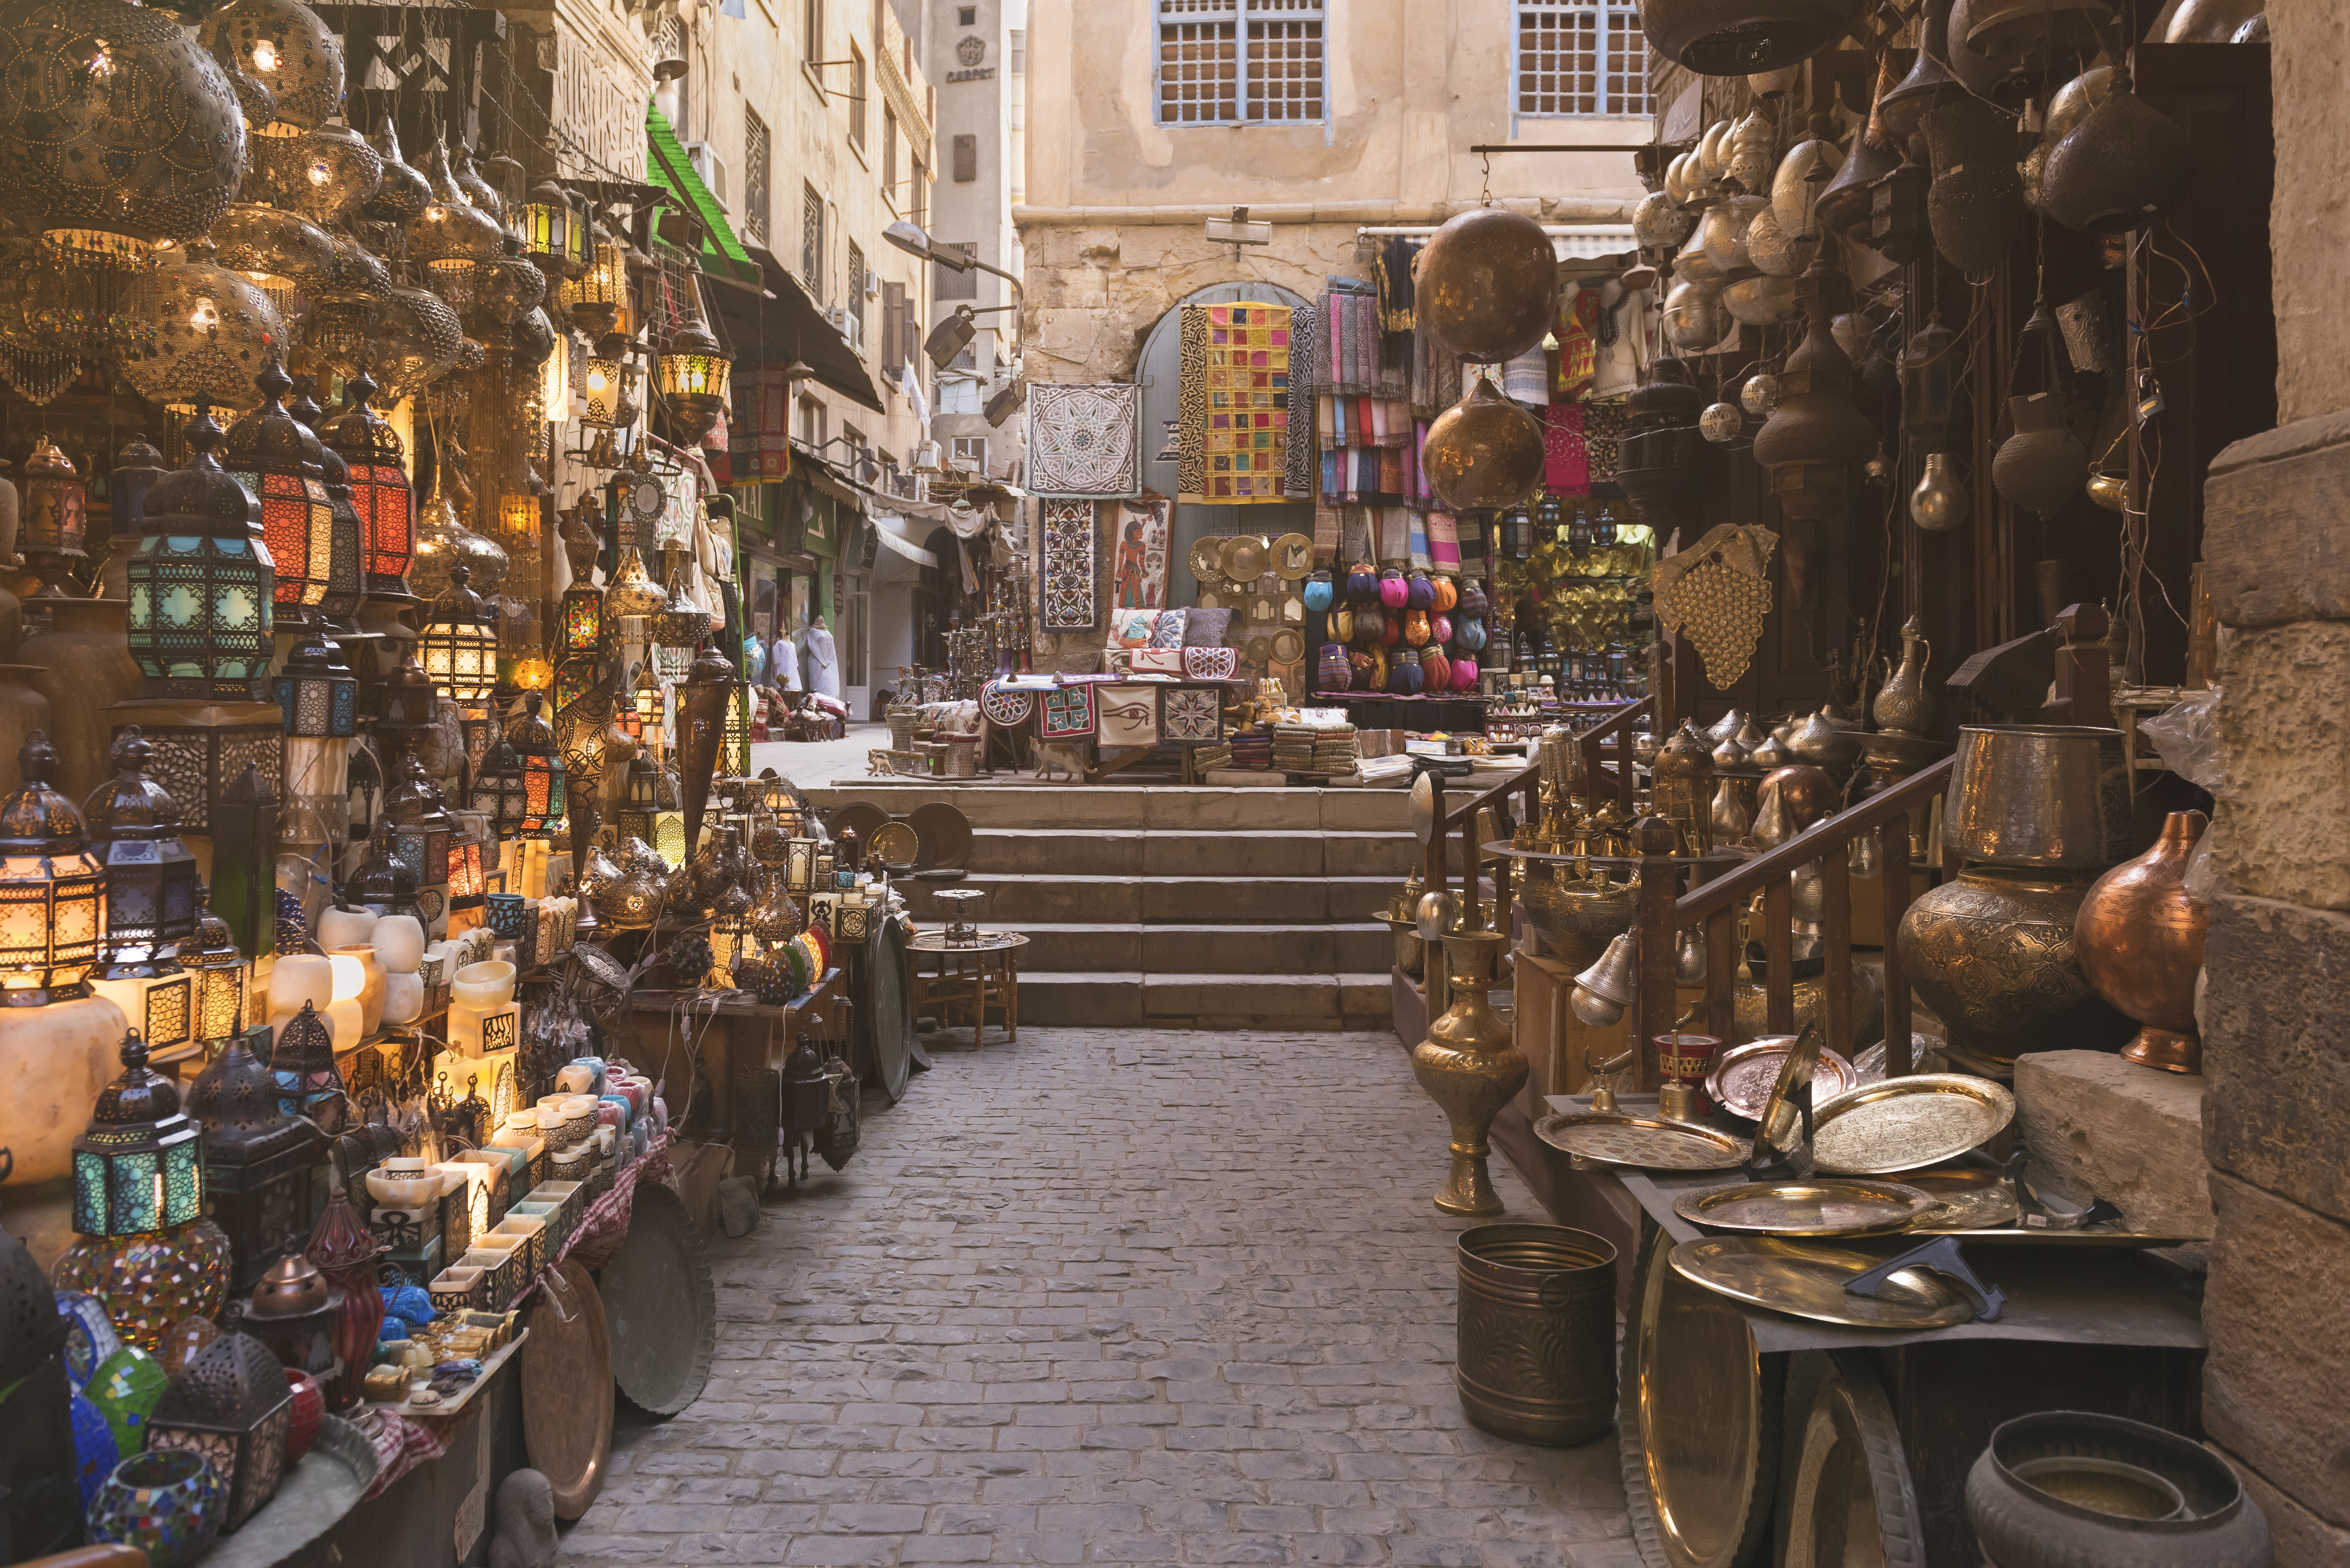 An Arab souq, or marketplace.